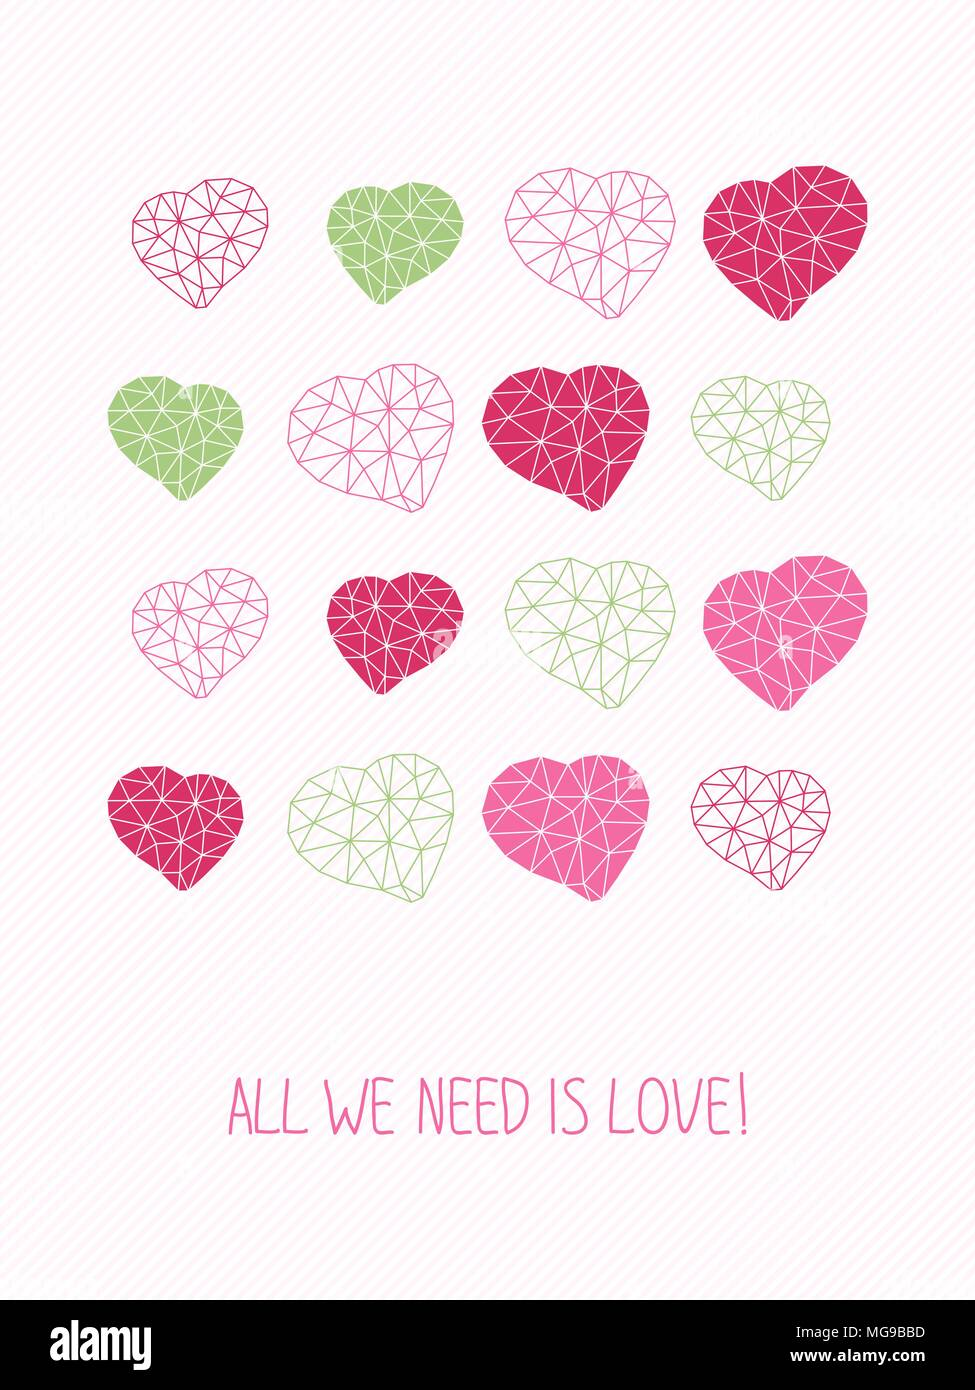 All we need is love greeting card copy space for text hearts greeting card copy space for text hearts made of triangles simple design for flyer postcard or poster valentines day card m4hsunfo